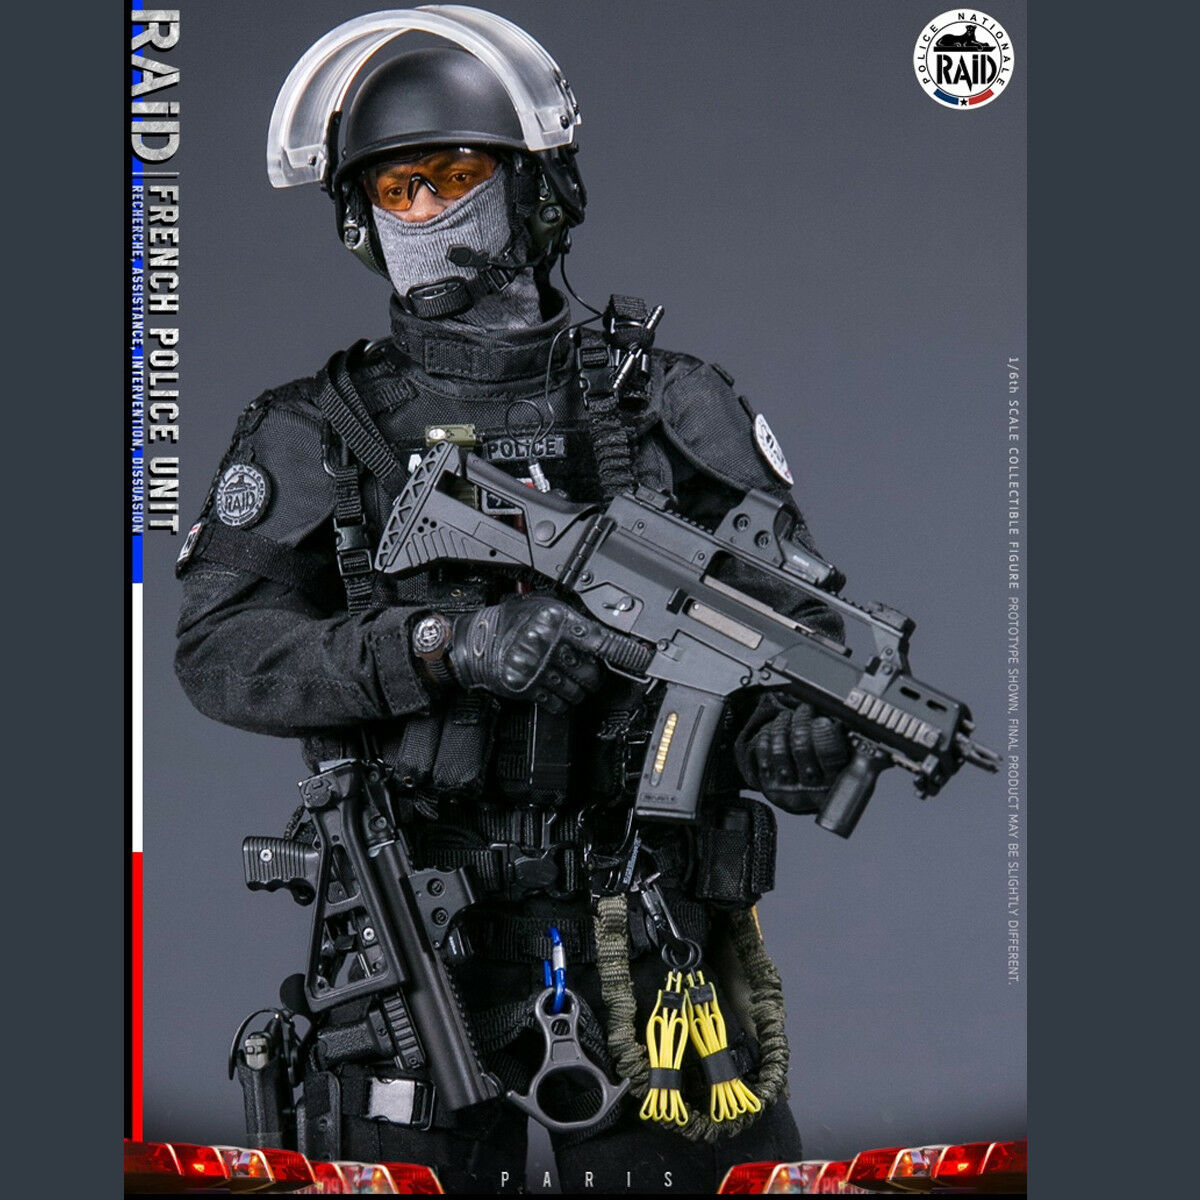 DAMTOYS 1/6th 78061 French Police Unit - RAID In Paris Action Figure Collectible